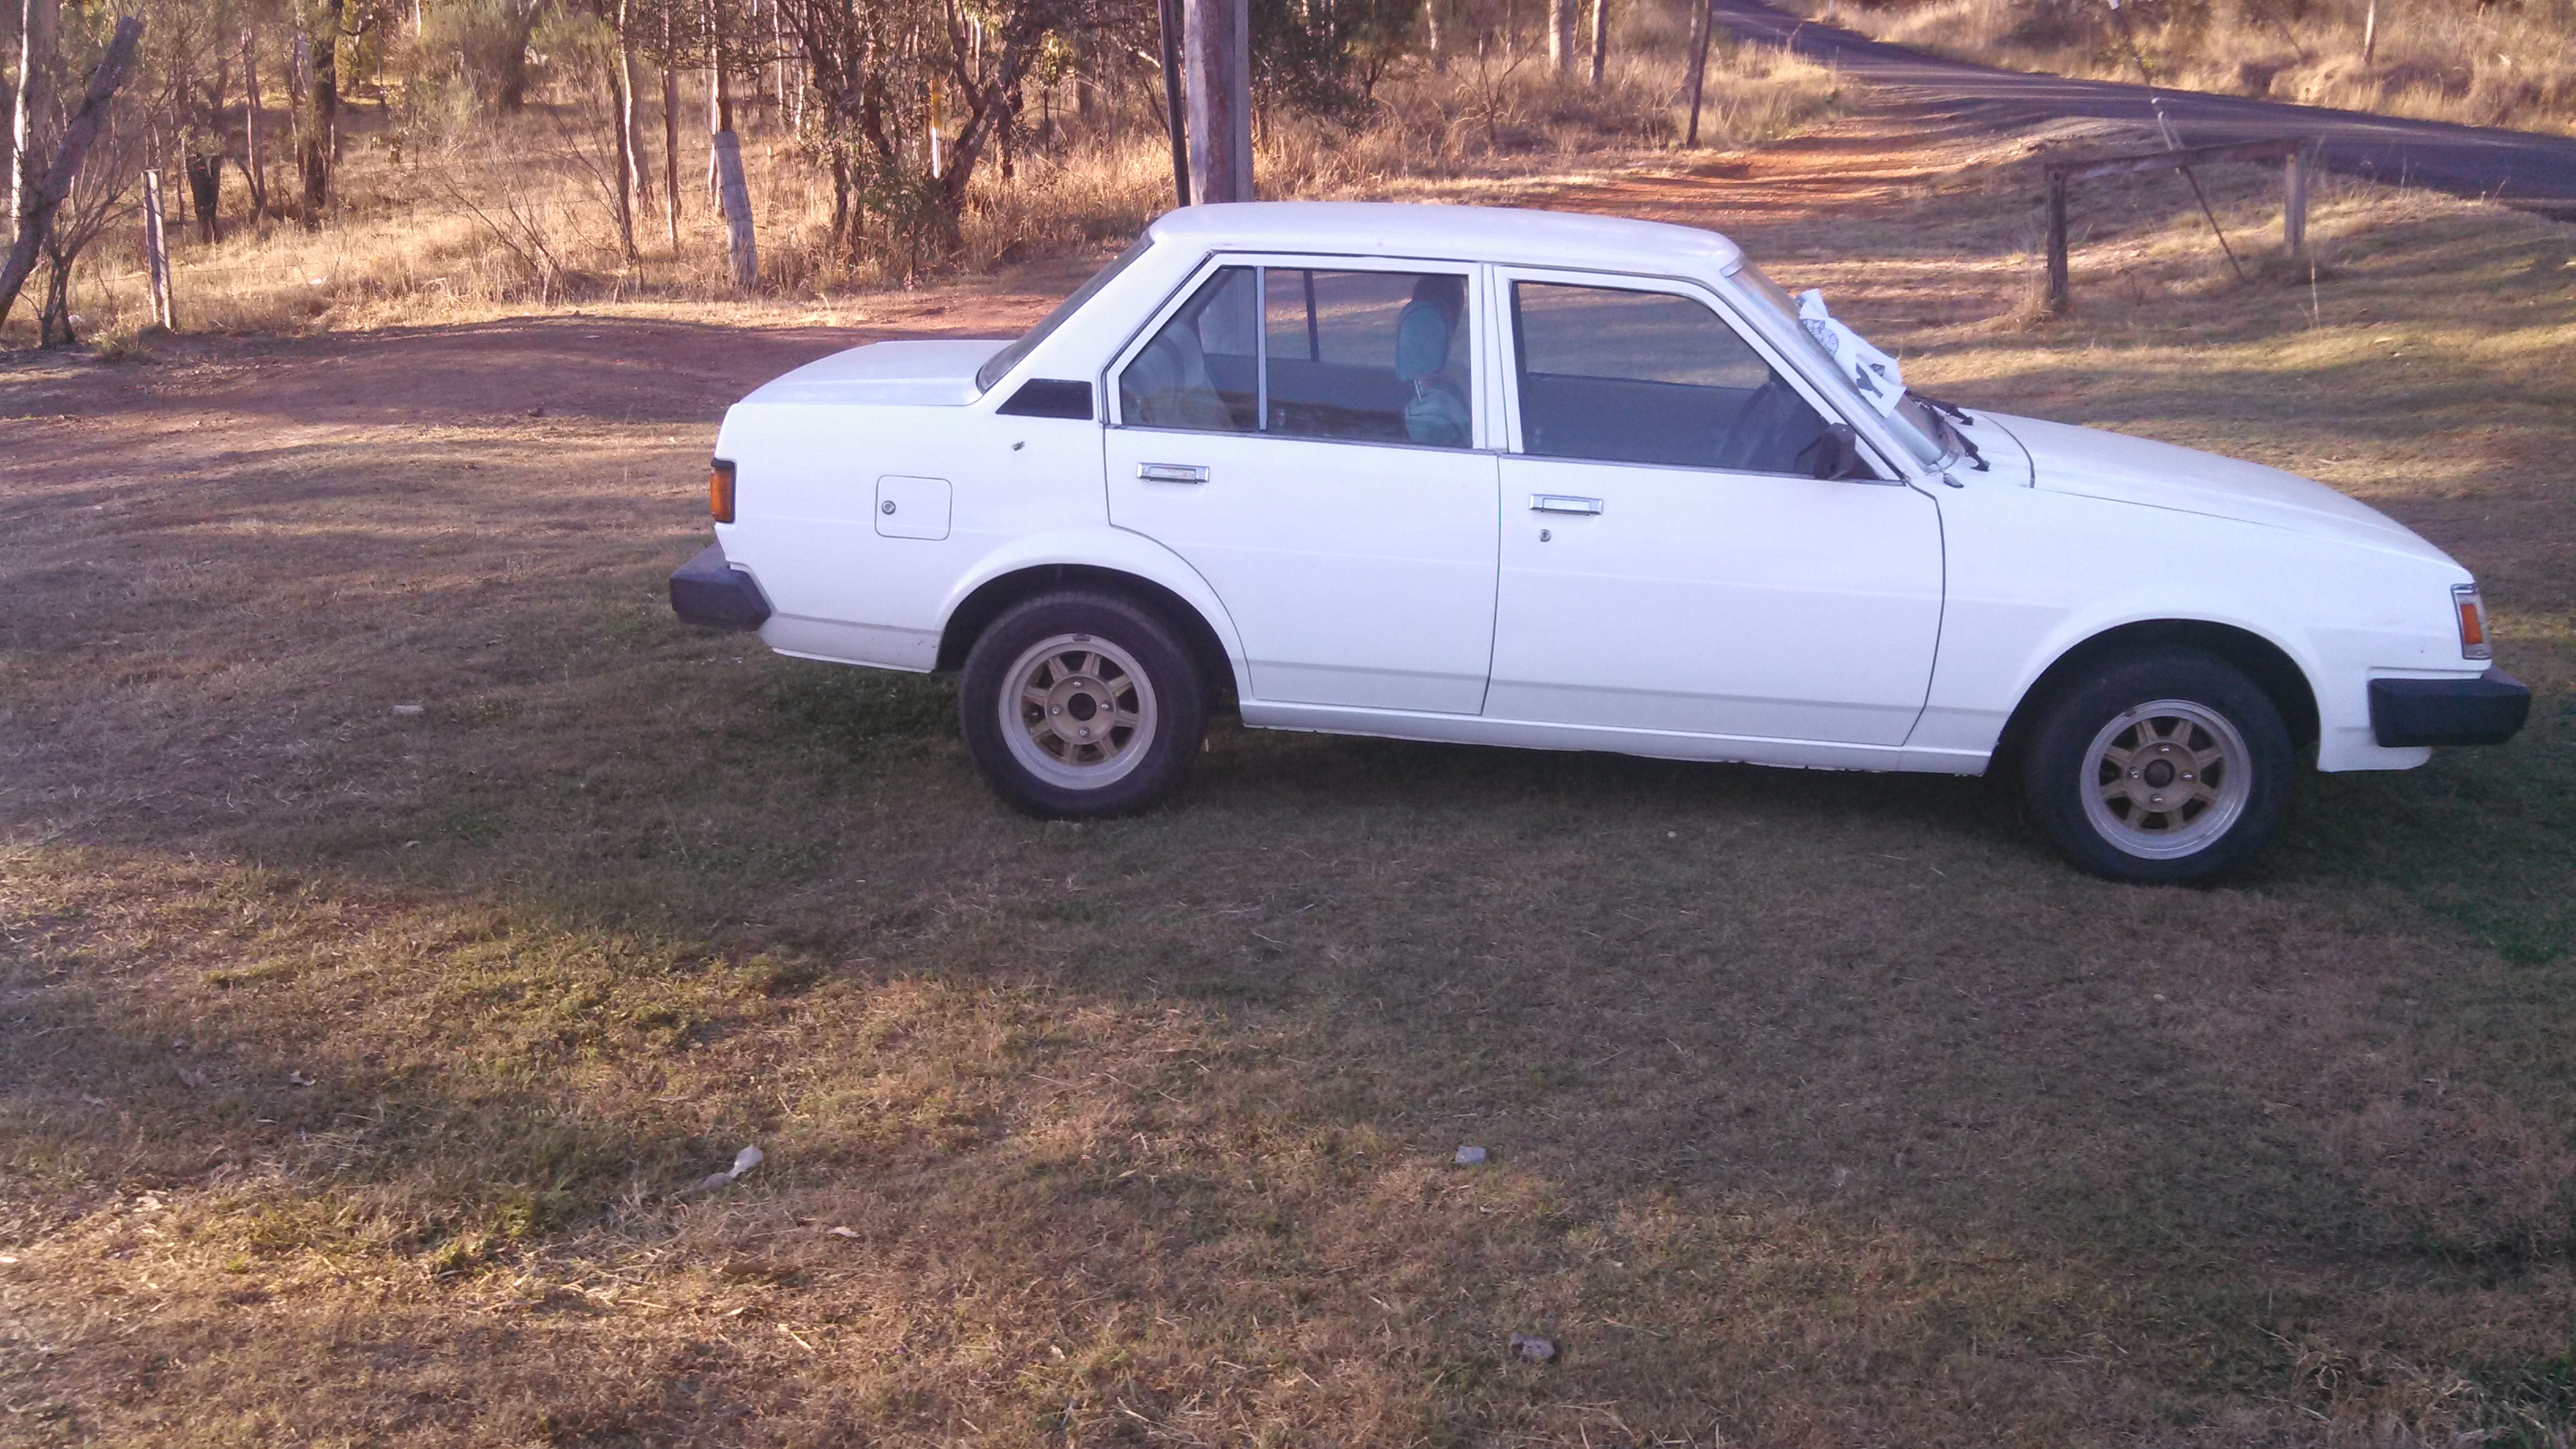 1984 toyota corolla for sale or swap qld central 2519749. Black Bedroom Furniture Sets. Home Design Ideas